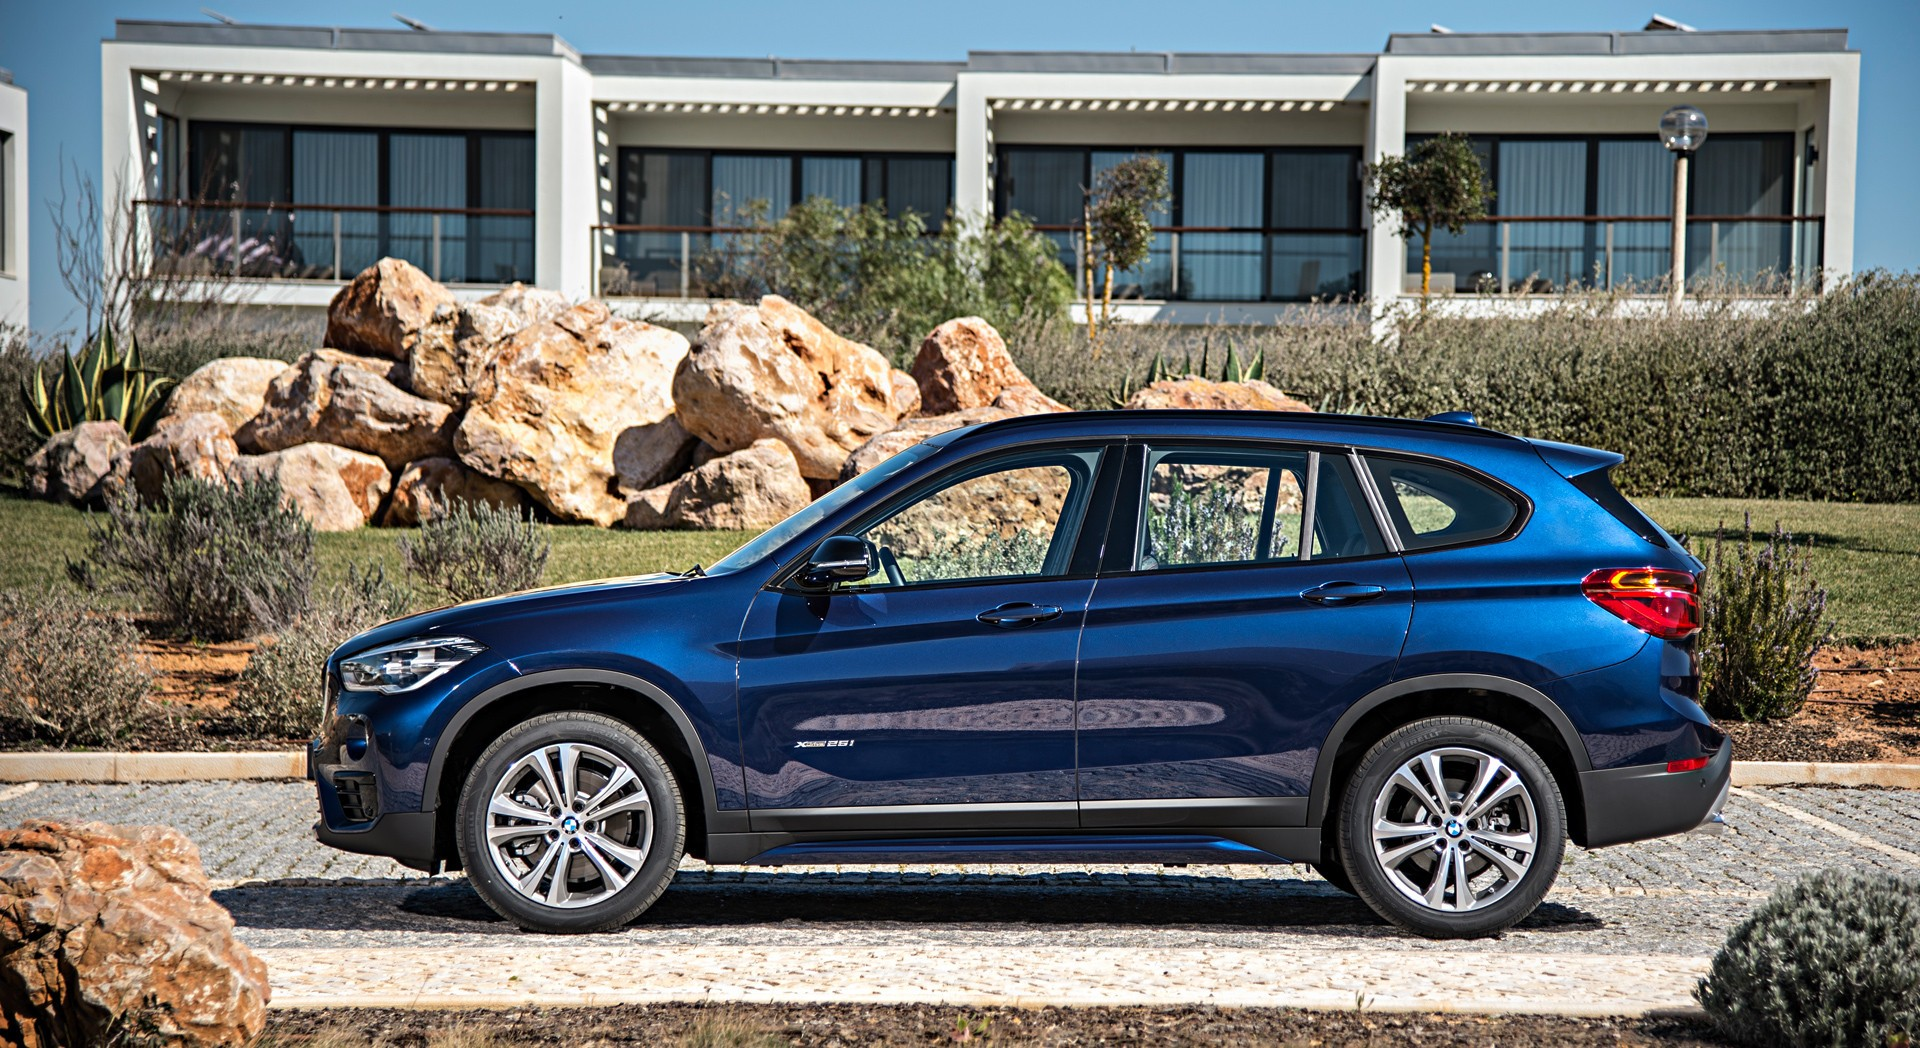 Bmw X1 Wallpapers Archives Page 5 Of 6 Hd Desktop